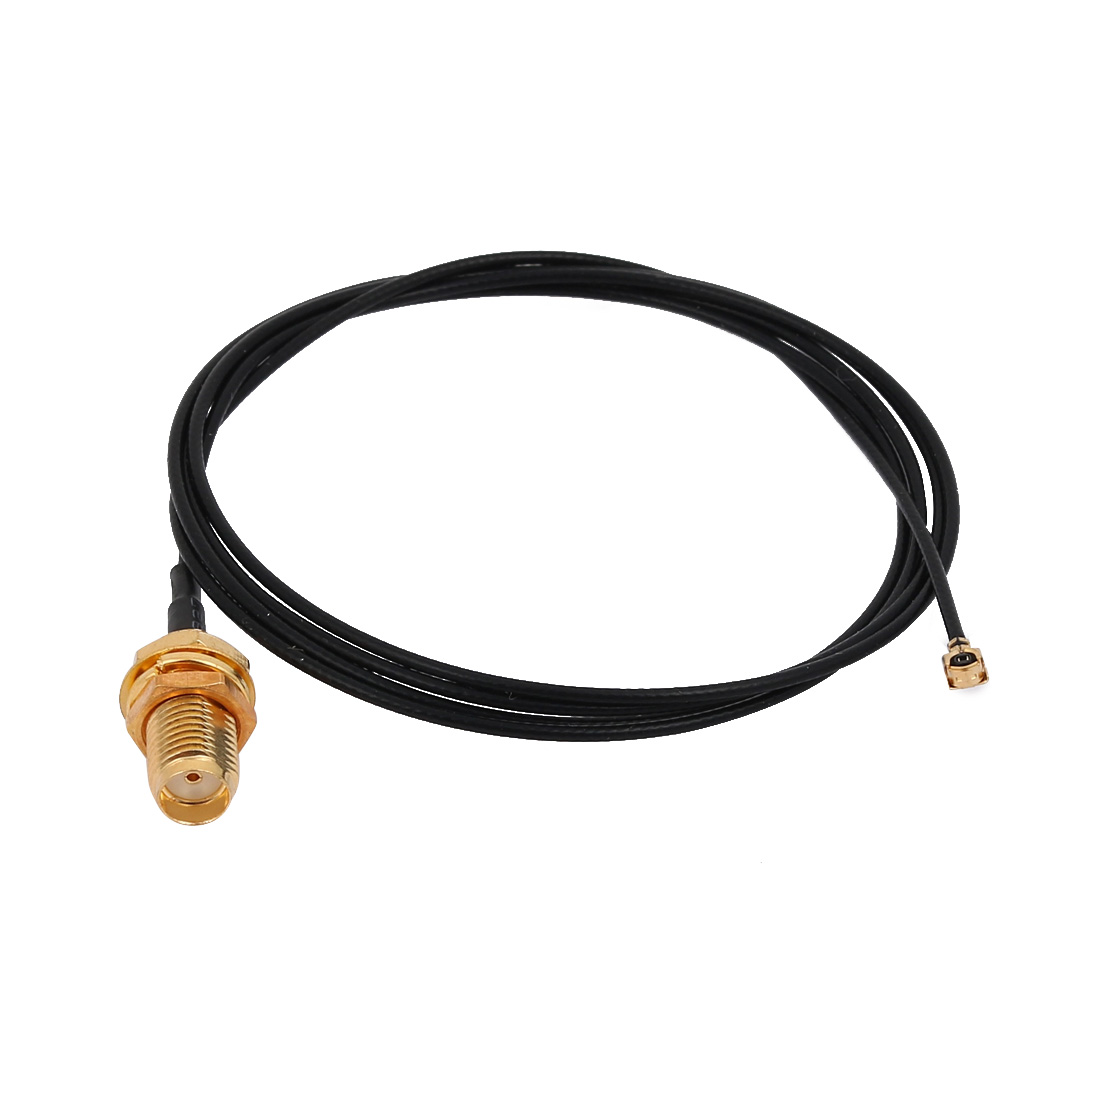 RF1.13 IPEX 1.0 to SMA Female Connector Antenna WiFi Pigtail Cable 80cm Length